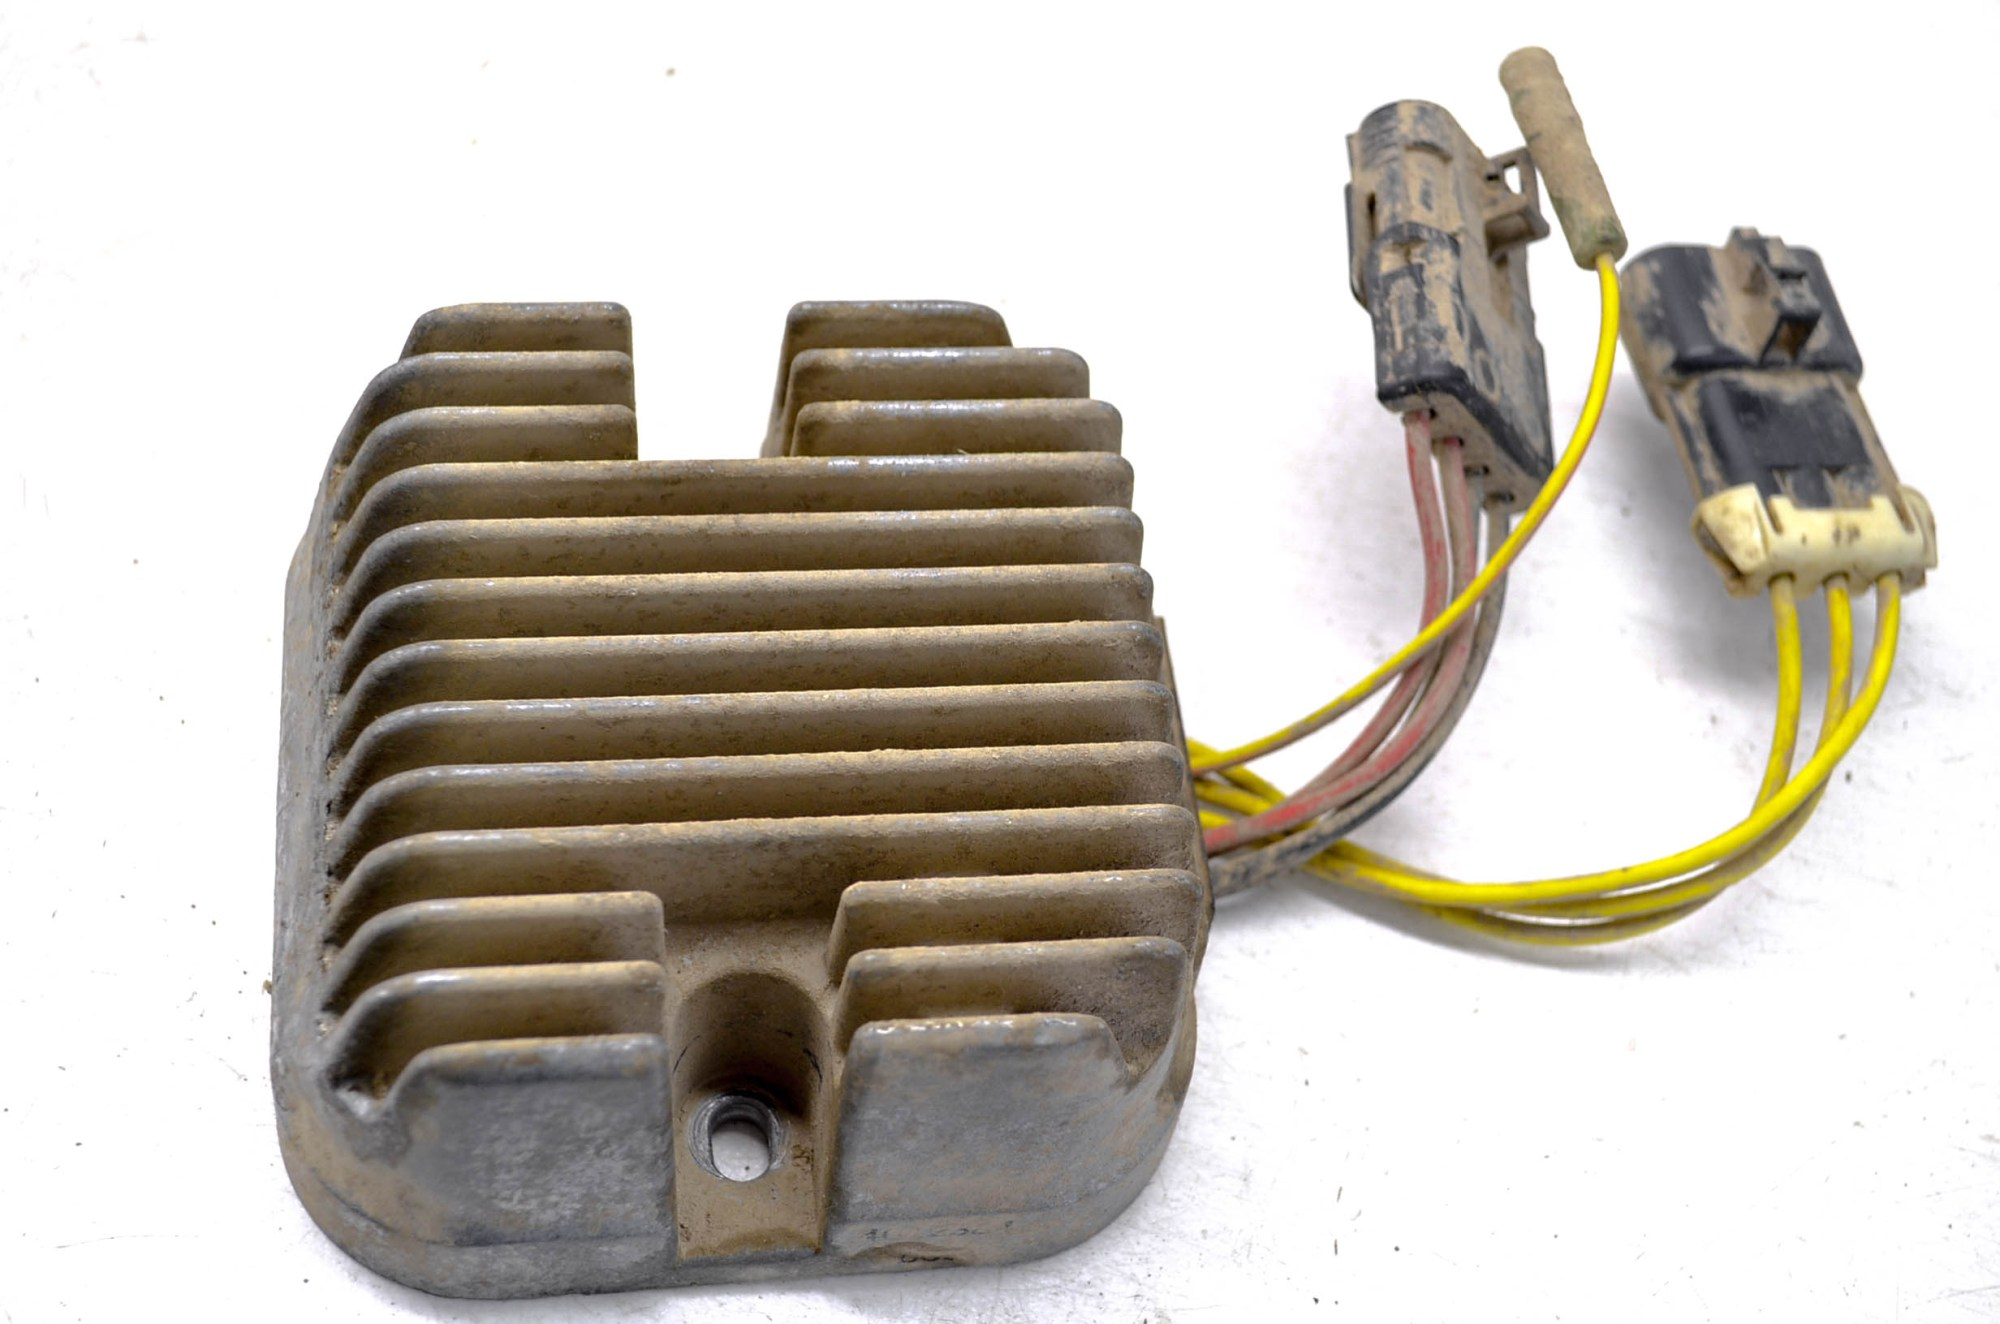 hight resolution of 09 polaris sportsman 800 x2 4x4 regulator rectifier